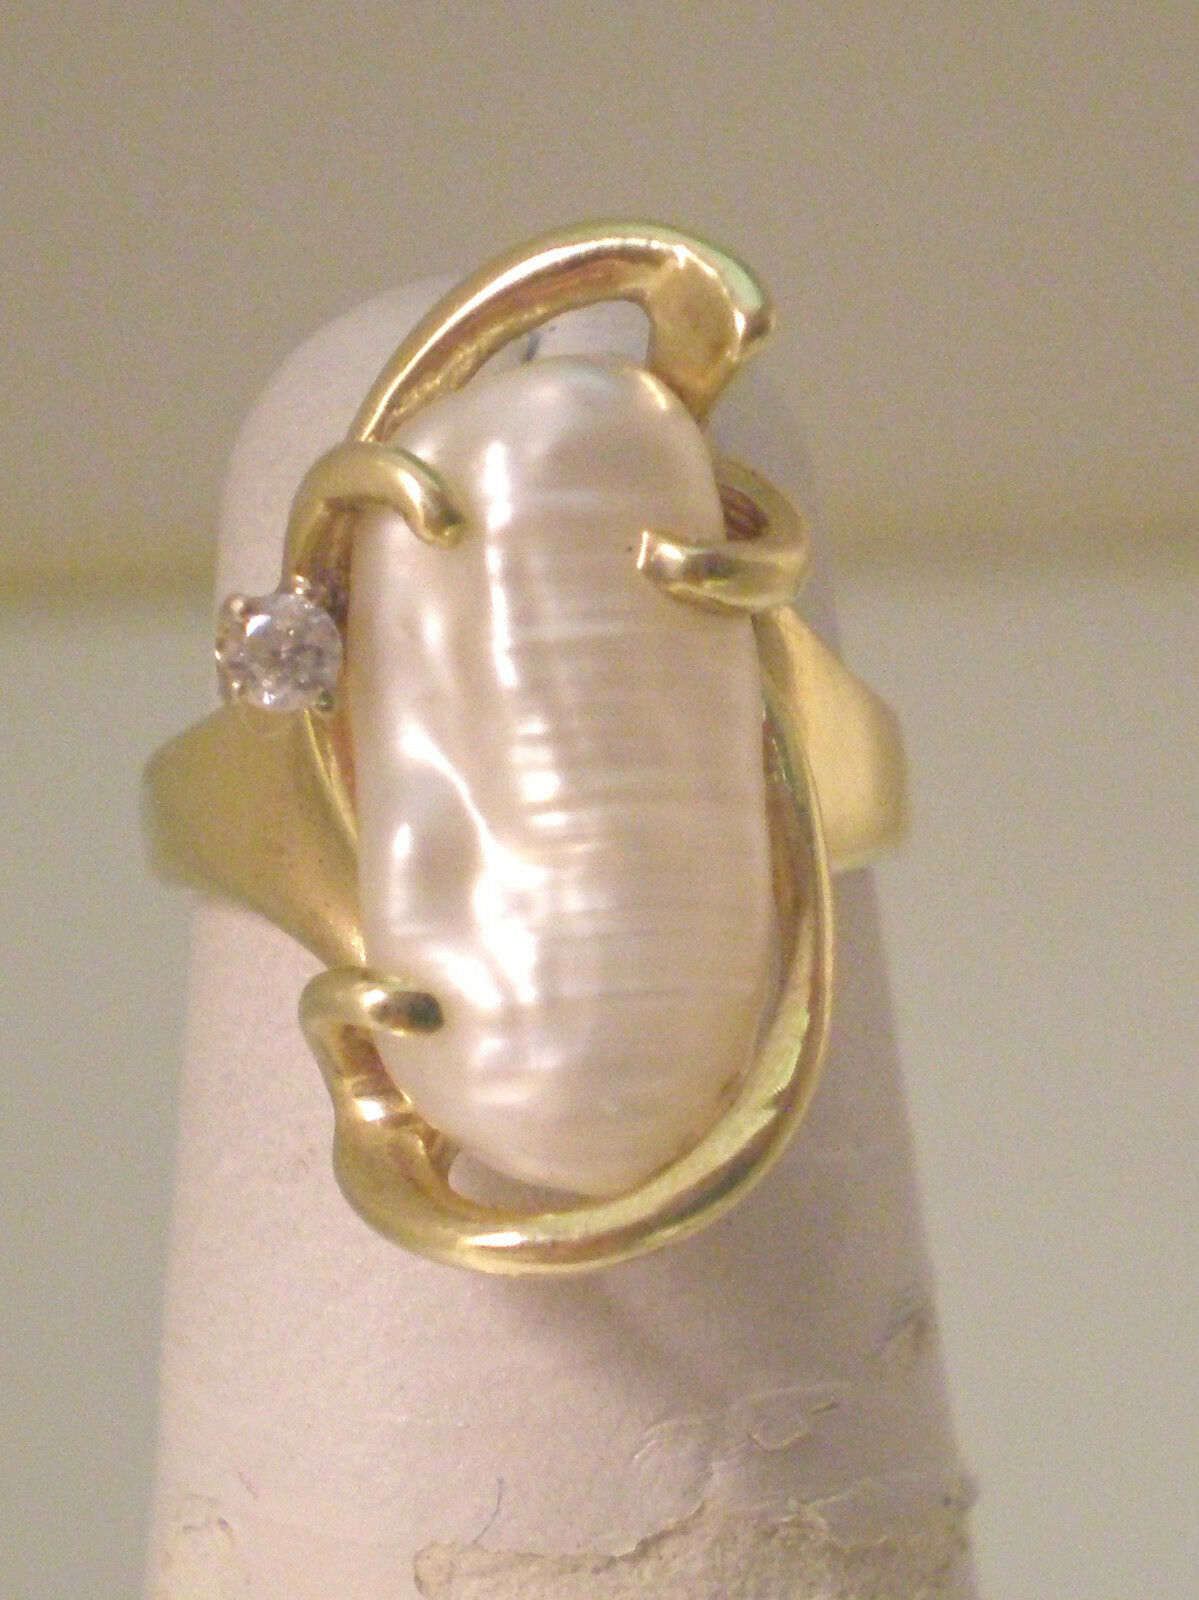 DEA2 14k gold Pearl Ring with Diamond Accent